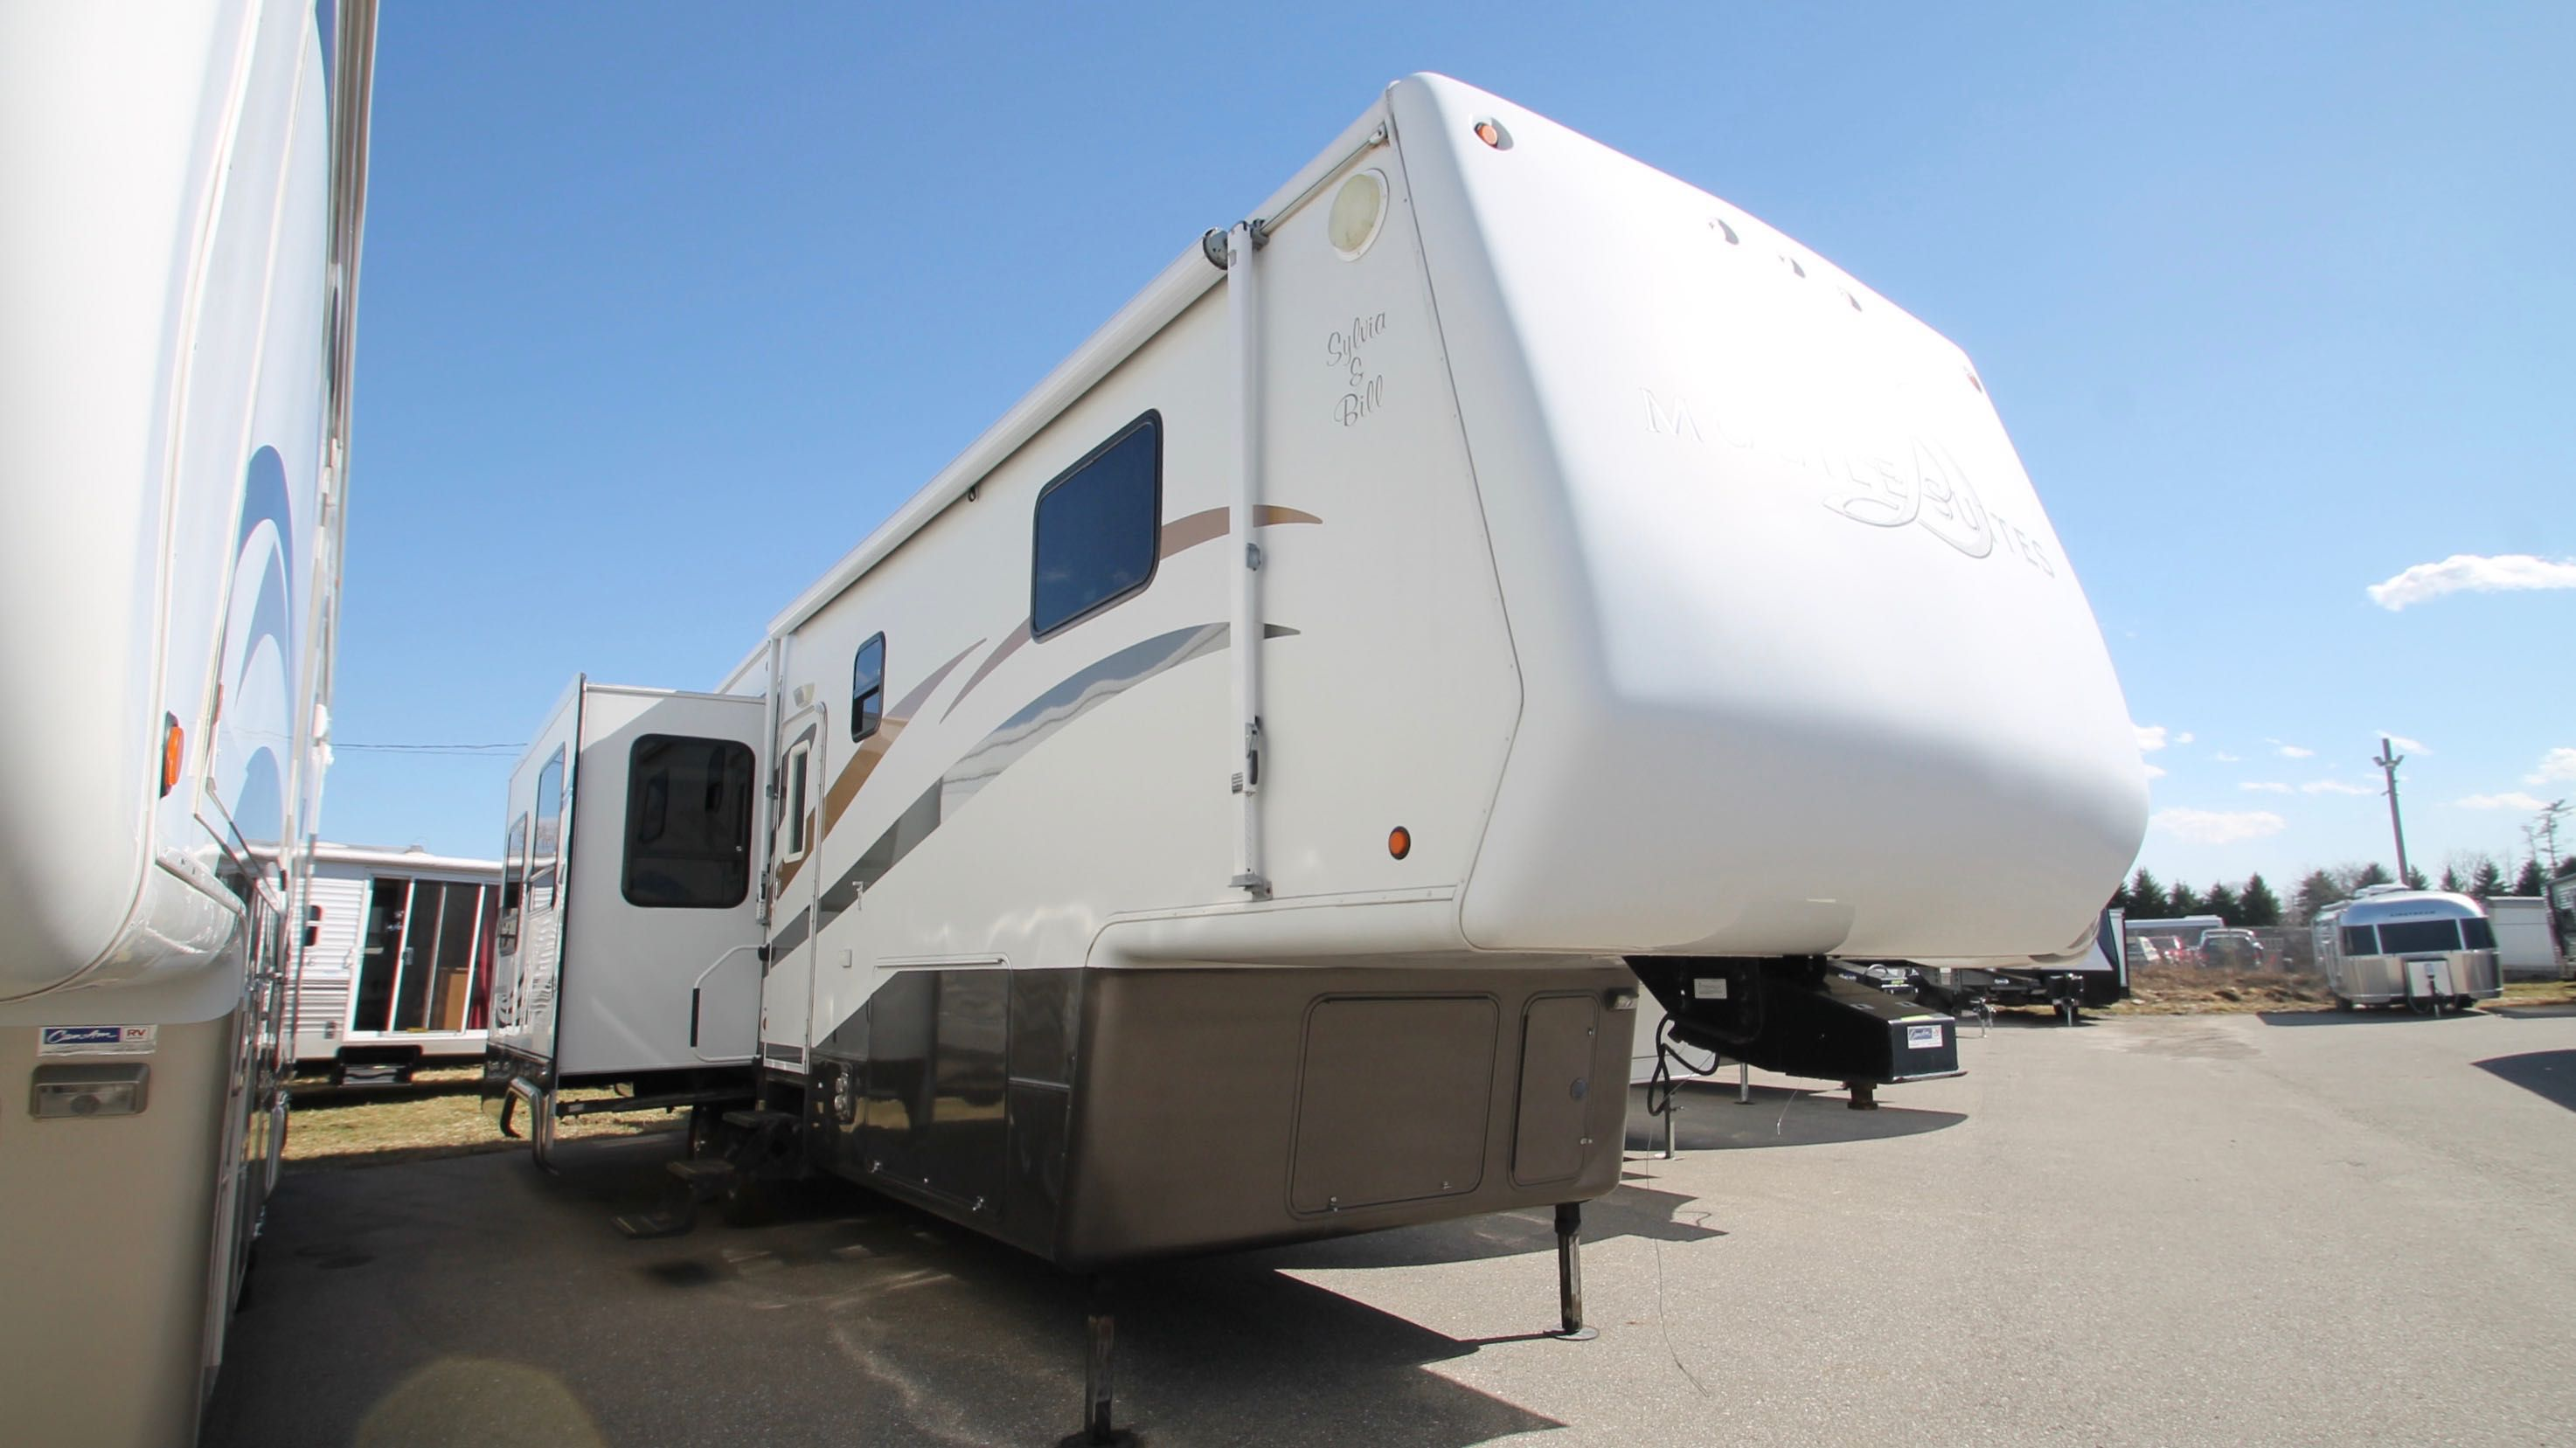 Innovative  Used Or New RVs Campers Amp Trailers In London  Kijiji Classifieds